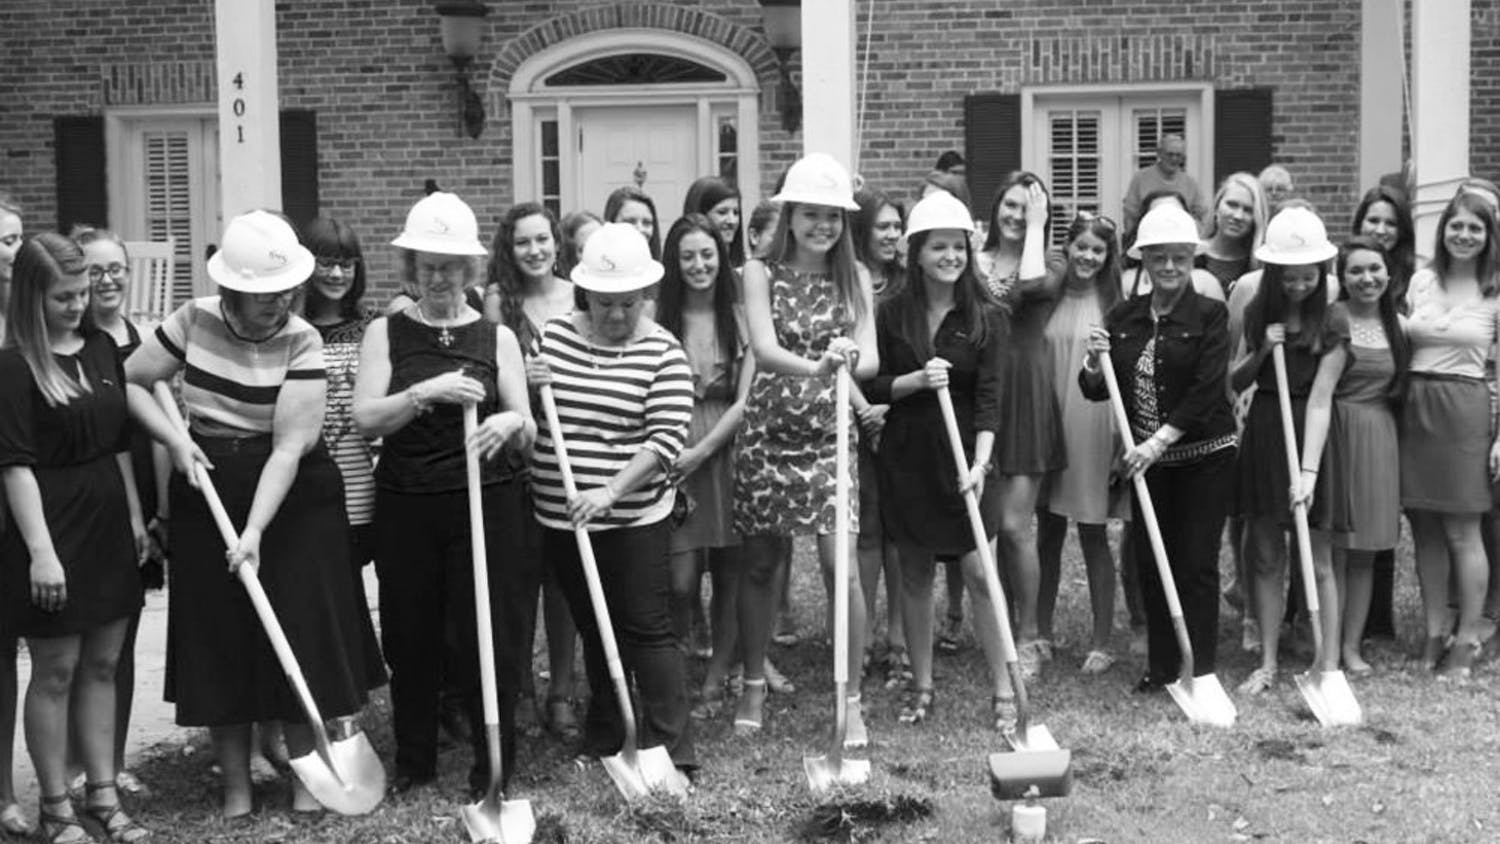 Members of Kappa Kappa Gamma break ground on their new house expansion Sunday afternoon. The renovations, which include an additional laundry room, are scheduled to be completed by Fall.